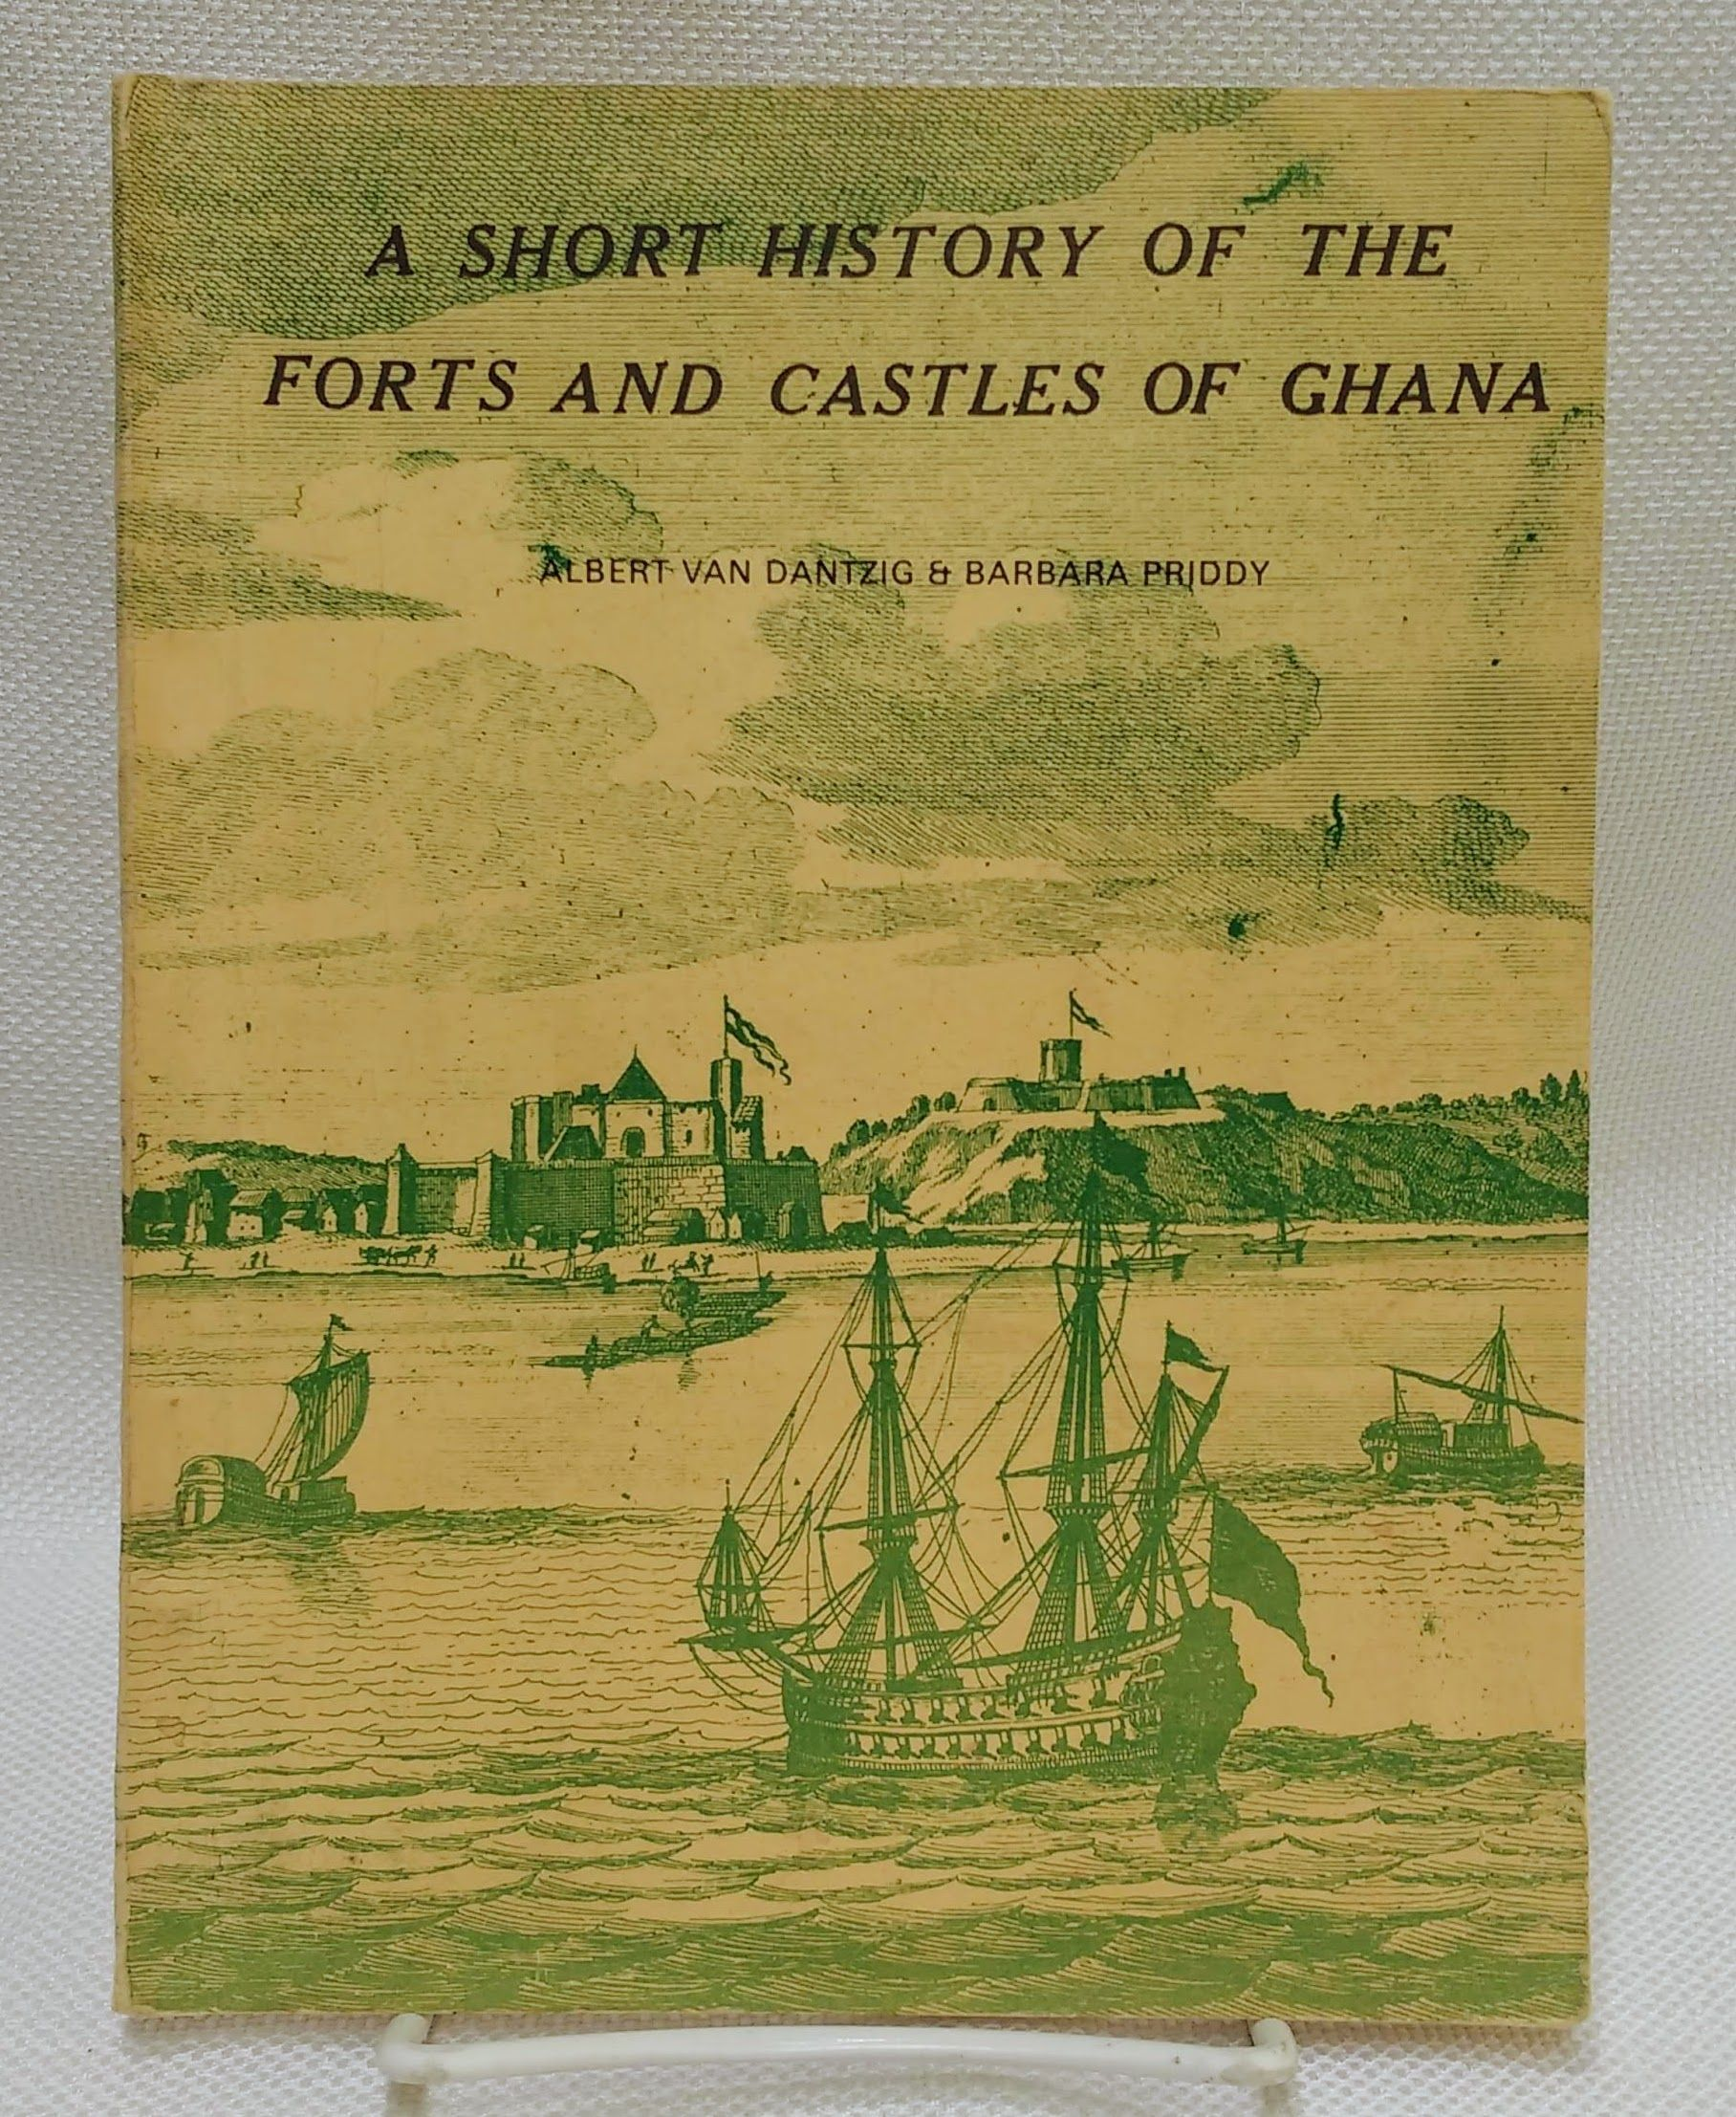 A Short History of the Forts and Castles of Ghana (Ghana Museums and Monuments Board series), Albert Van Dantzig; Barbara Priddy